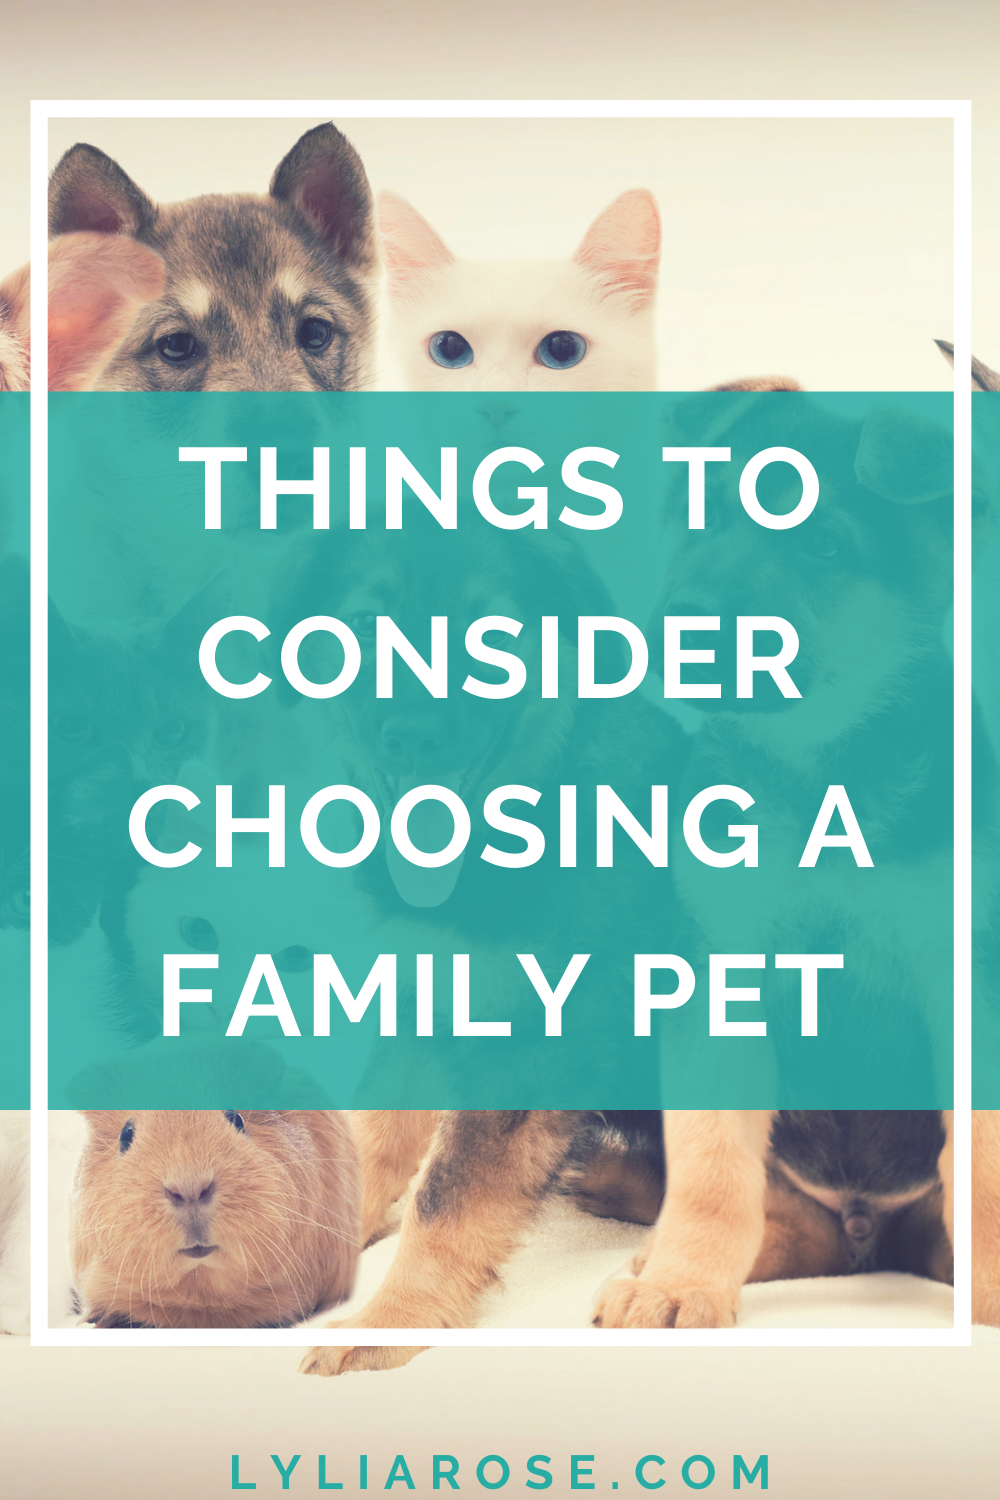 Important things to consider when choosing a pet for your family